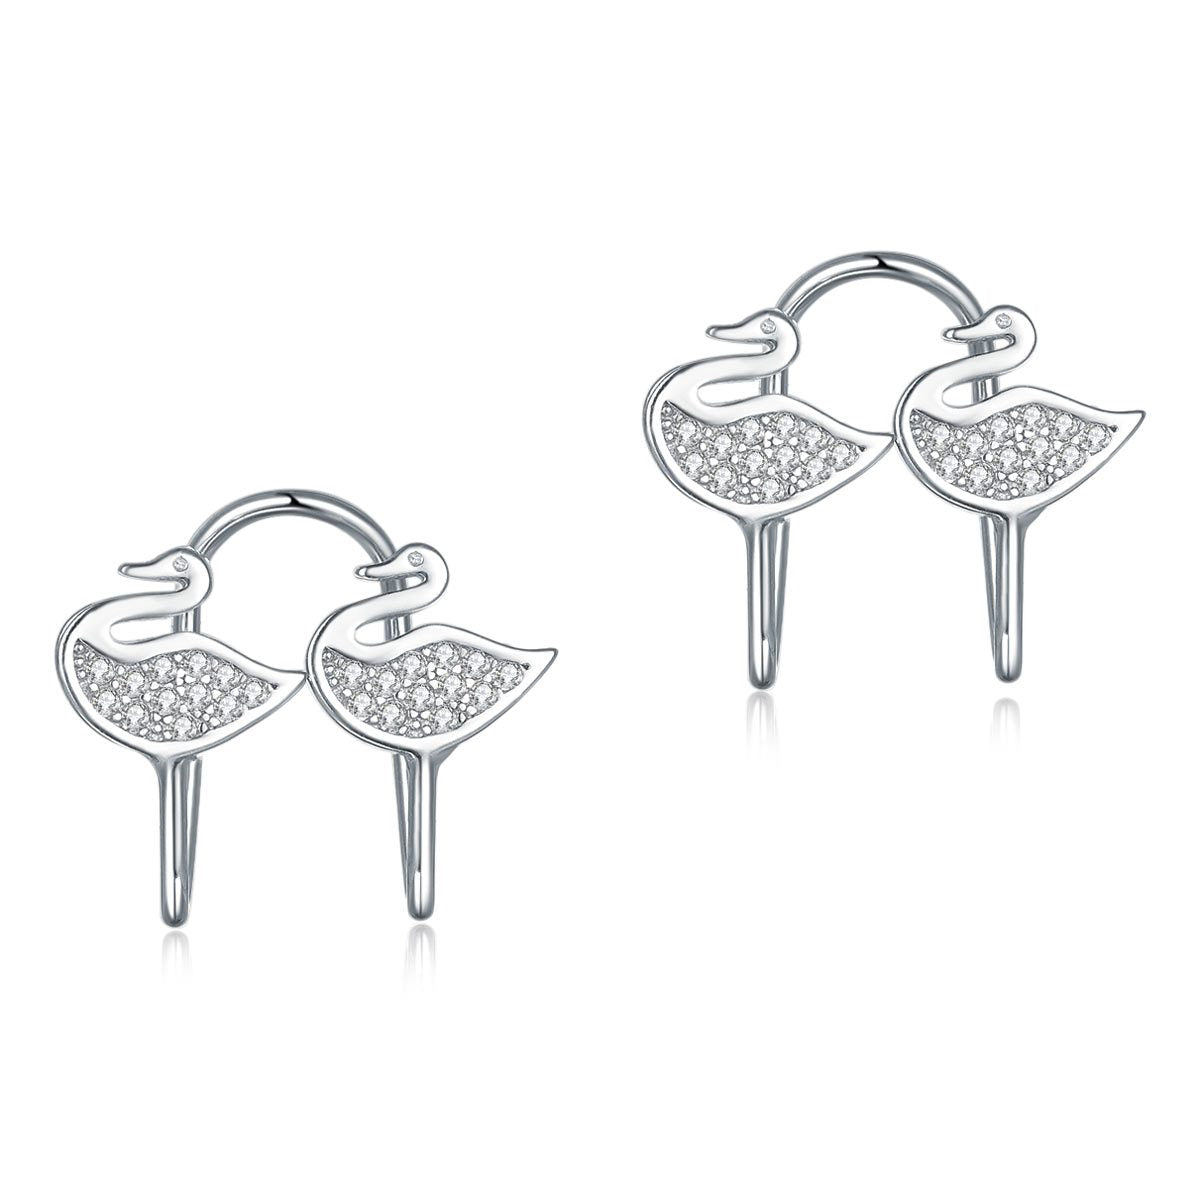 Solid 925 Sterling Silver Clip on Earrings Swan